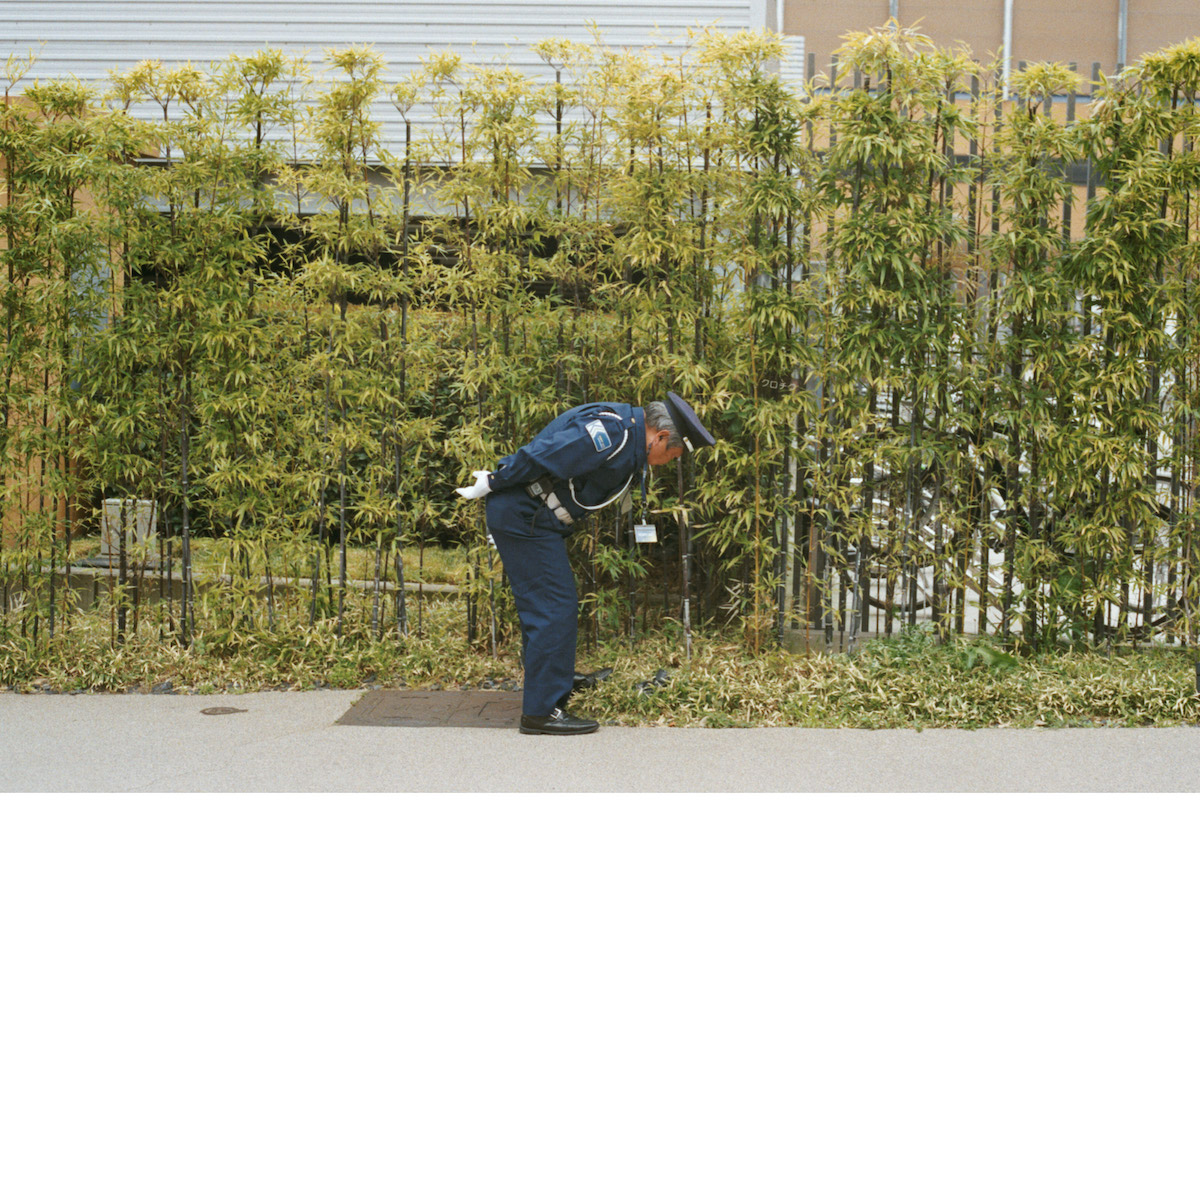 The cover of Gold Panda's third album, Good Luck and Do Your Best. The image, taken by Lewis, shows a security guard in Kyoto bending down to pick up some rubbish